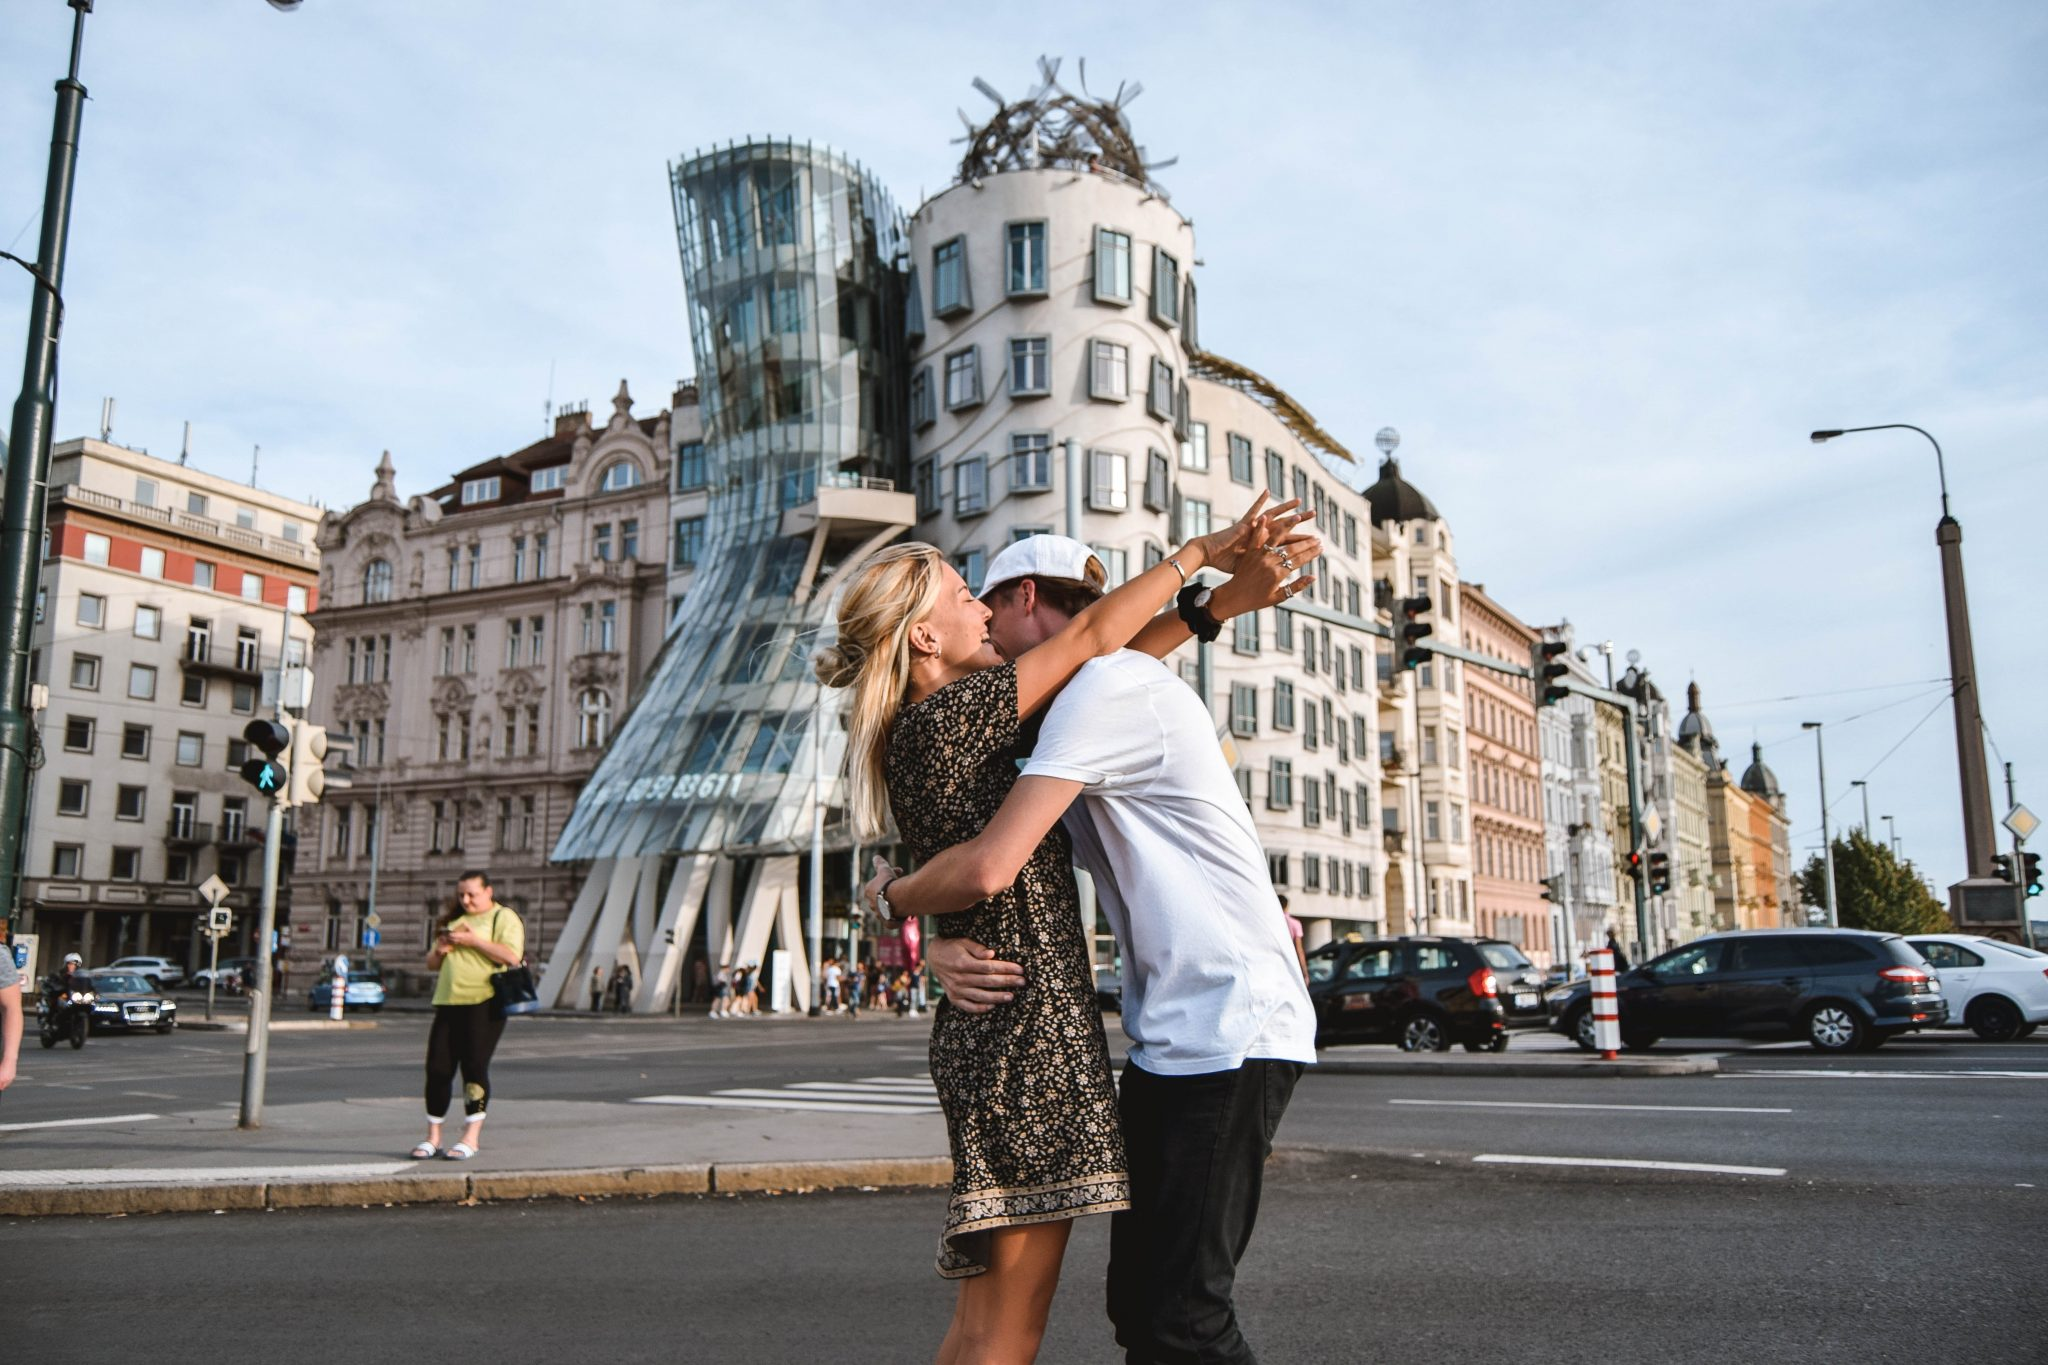 Wanderers & Warriors - Charlie & Lauren UK Travel Couple - Top 9 FUN Things To Do In Prague - What To See In Prague Dancing House